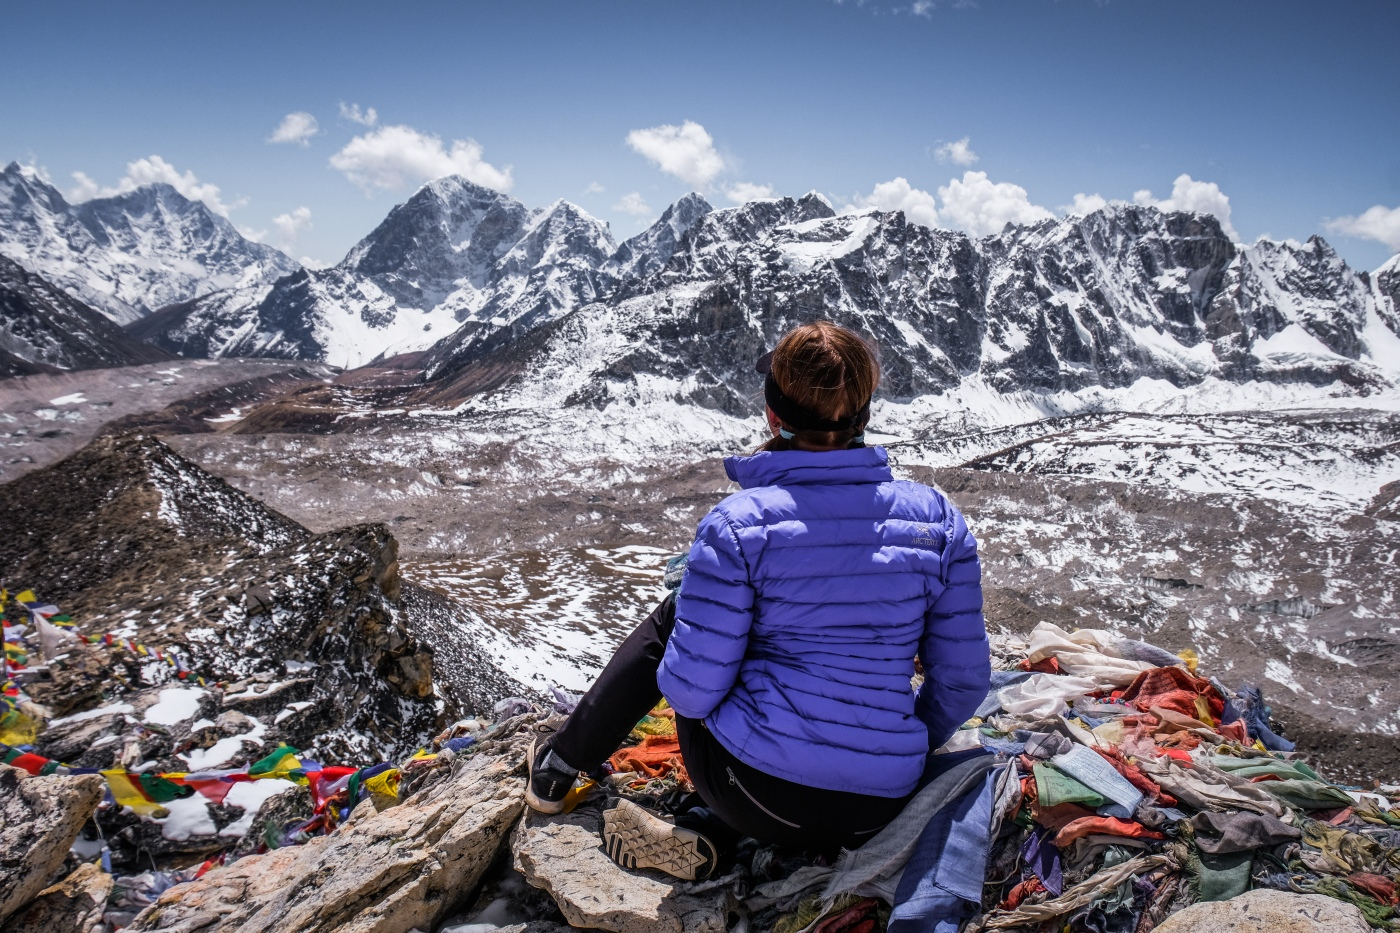 Hiking the Himalayas Everything you need to know about Altitude Sickness